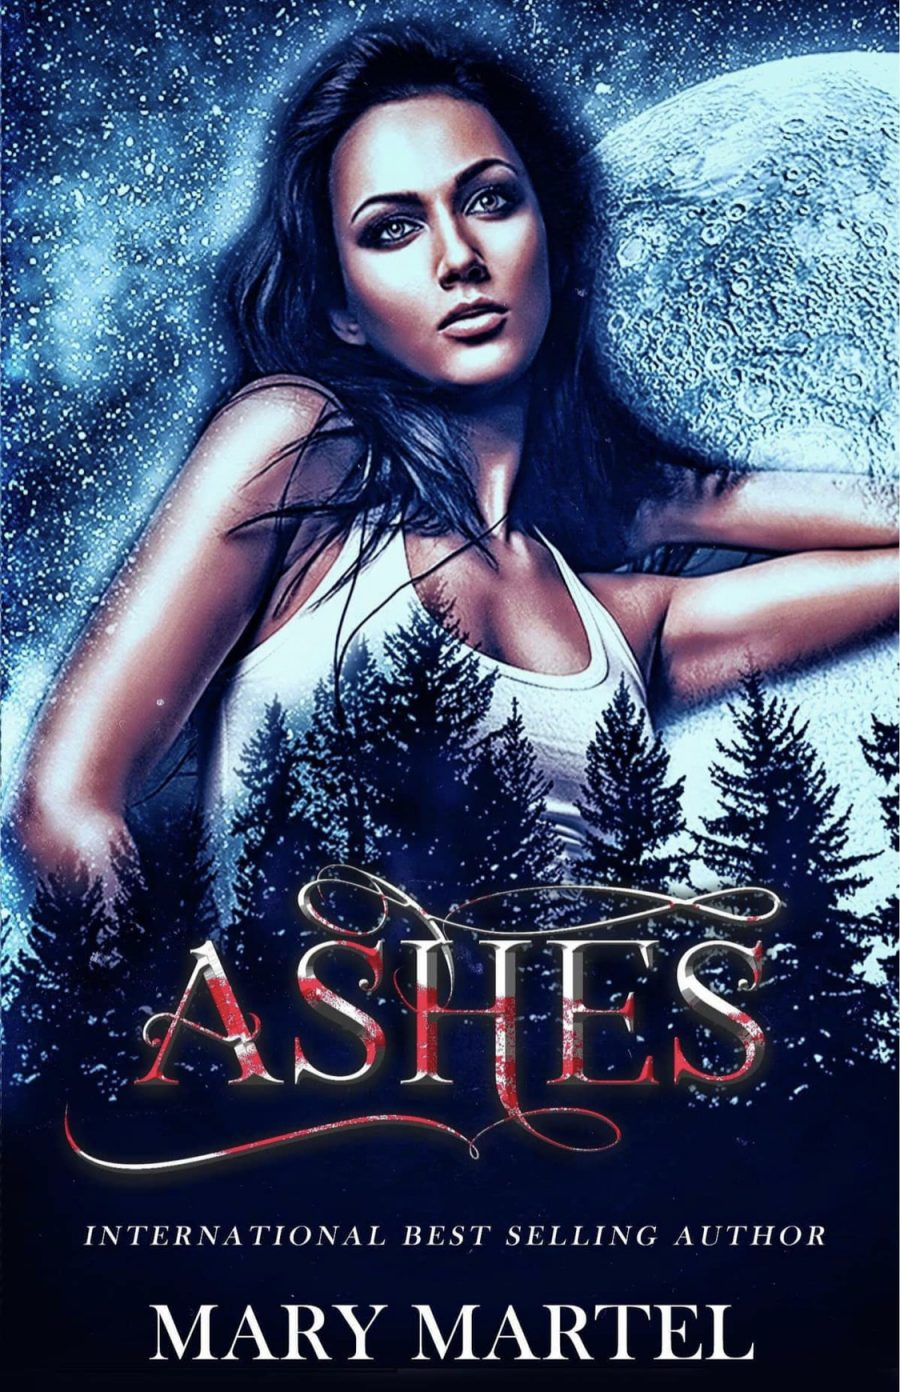 Ashes by Mary Martell - A Book Review #BookReview #MediumBurn #RH #WhyChoose #ReverseHarem #Dark #PNR #Paranormal #Warnings